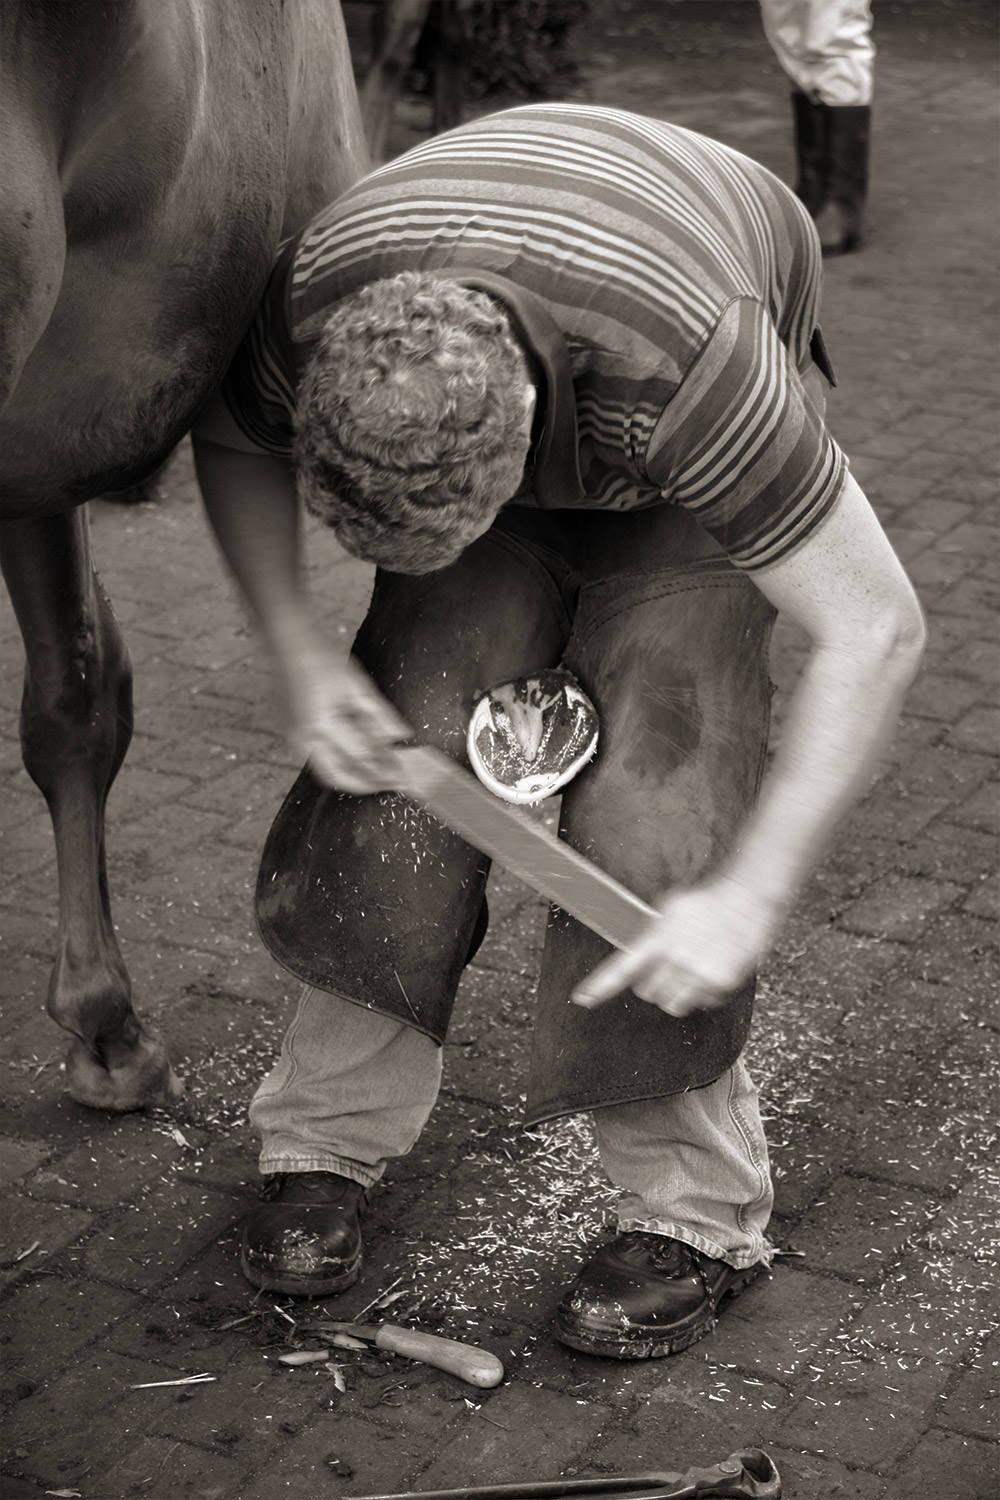 The Farrier at Work 6